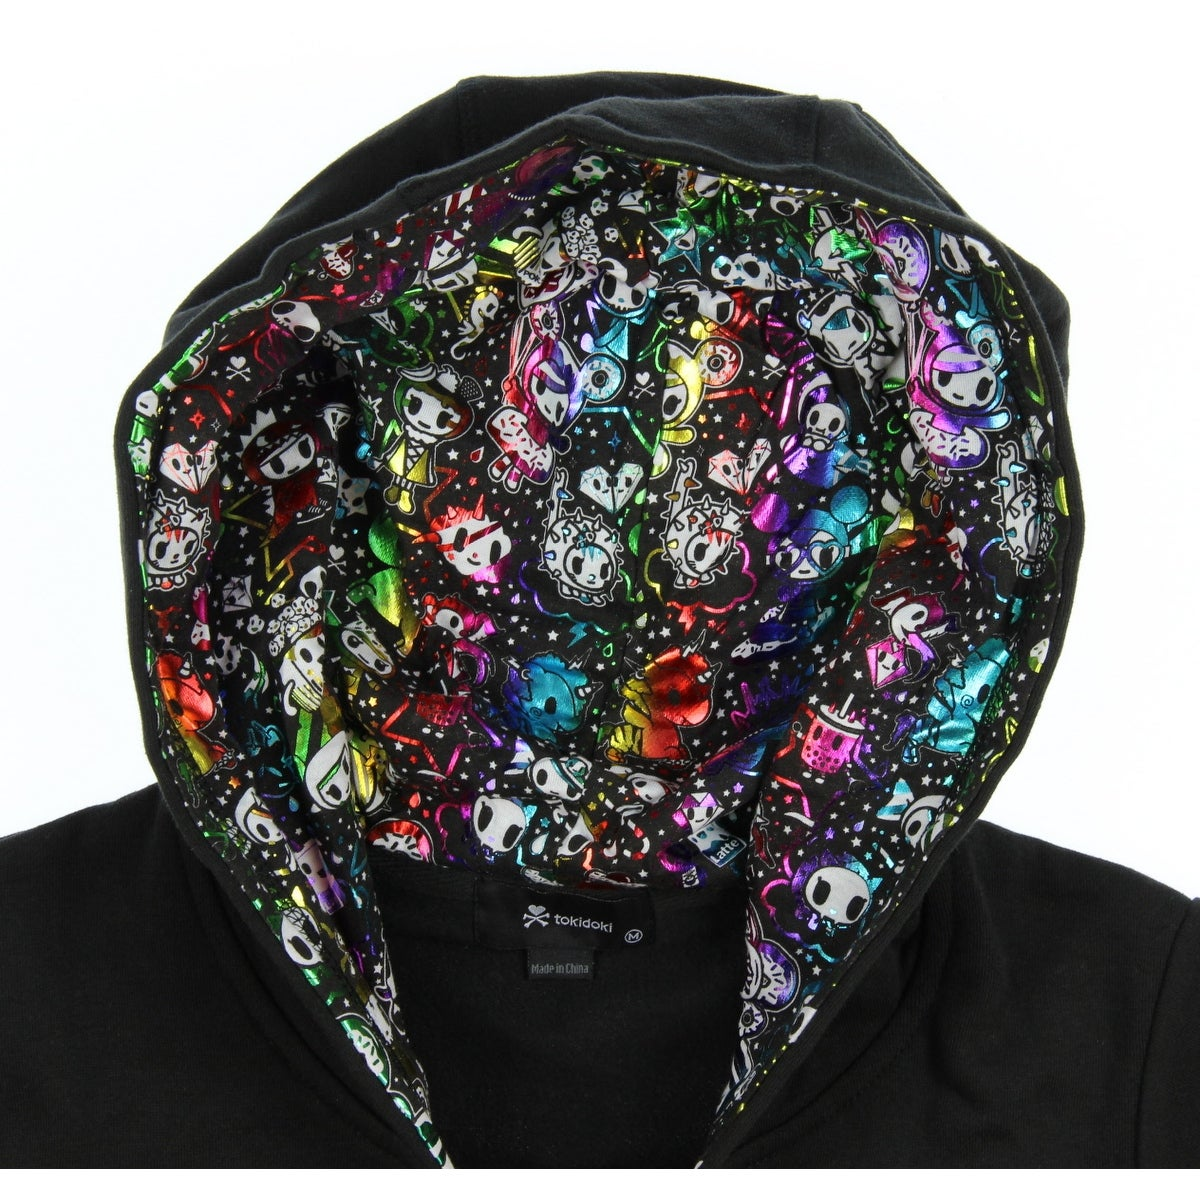 0e41415d7 Shop Tokidoki Women's Rainbow Buds Donutella Palette Hoodie - Free Shipping  Today - Overstock - 24253820